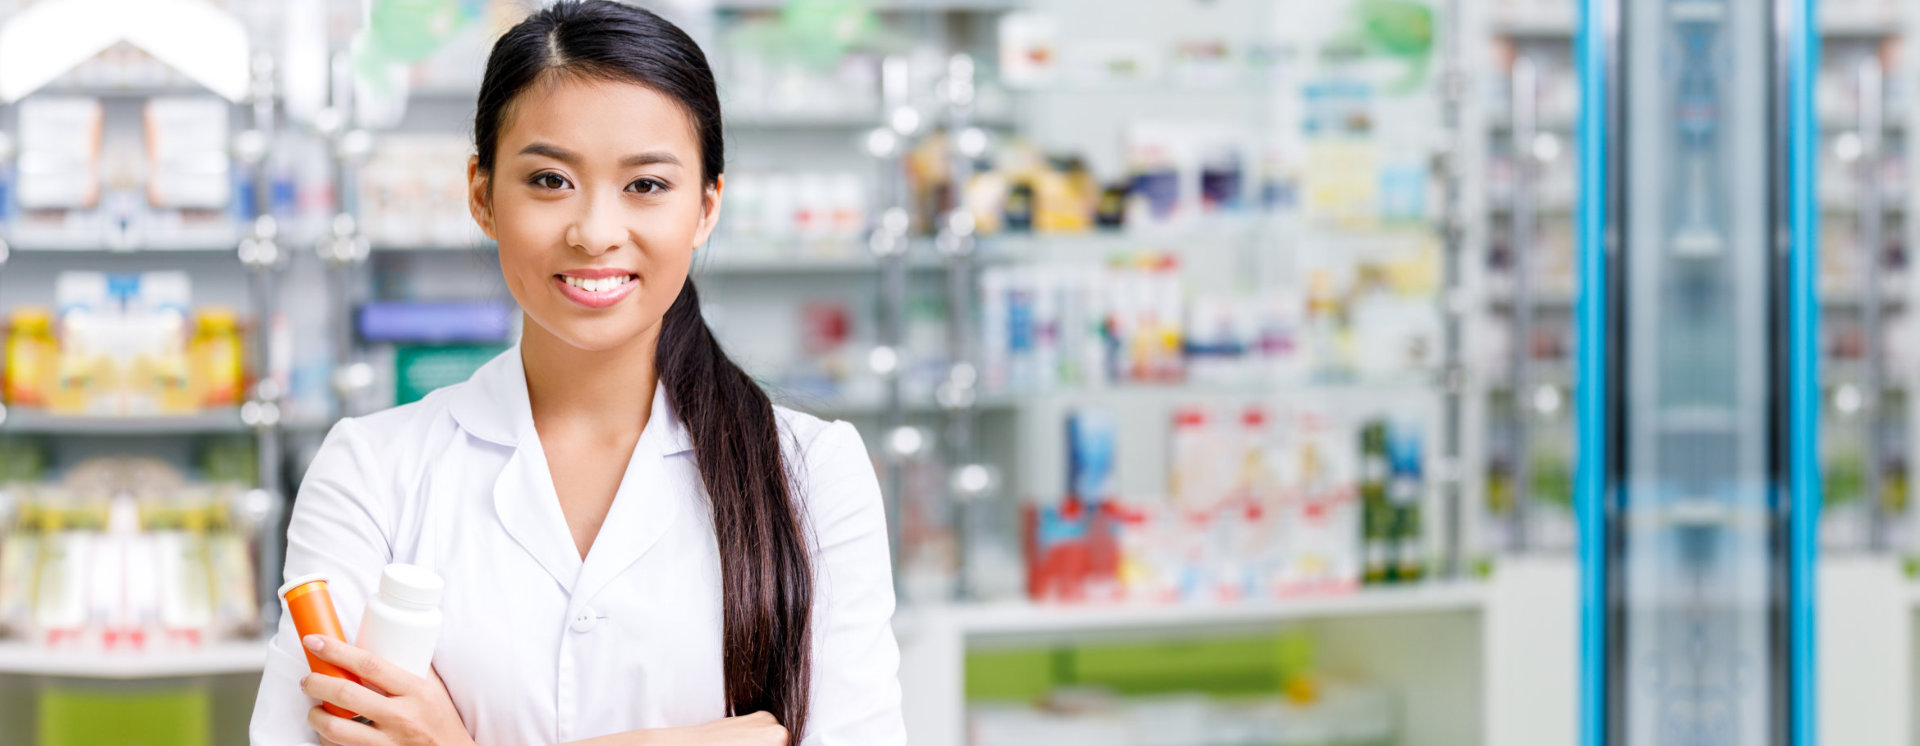 photo of a woman pharmacist holding pharmacy products